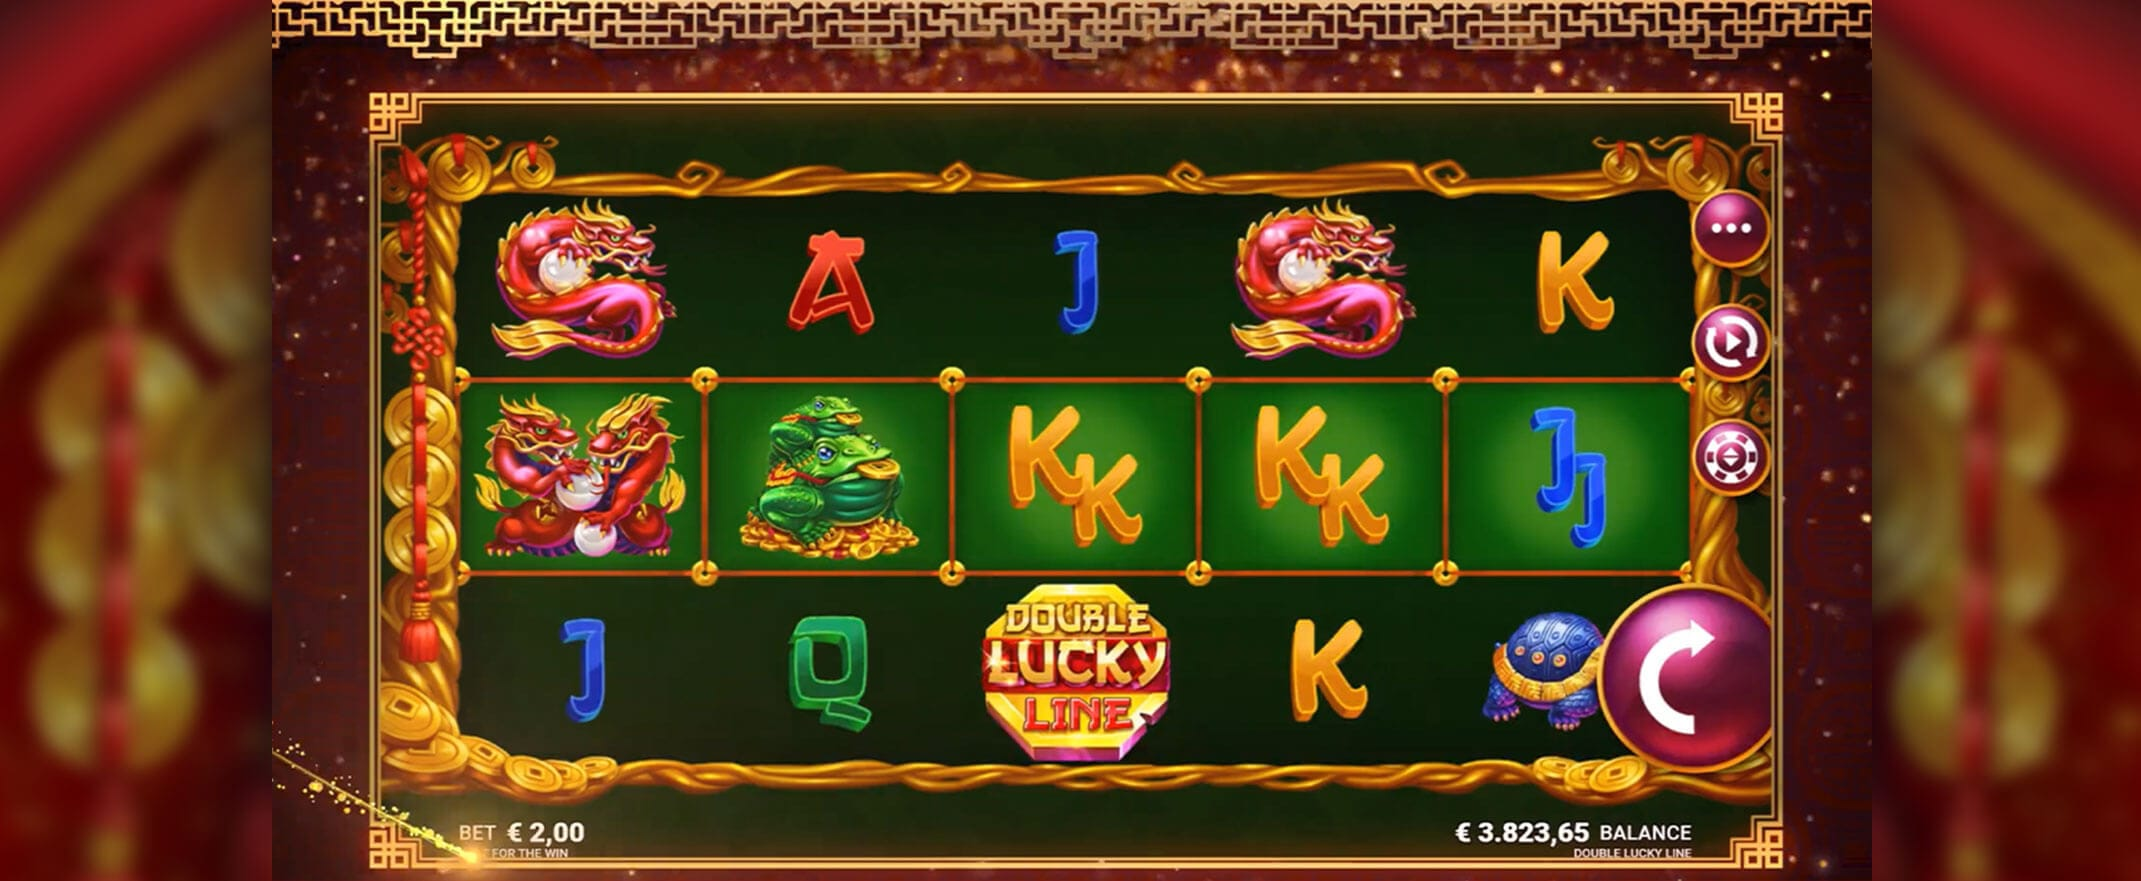 Double Lucky Line Casino Slot Game